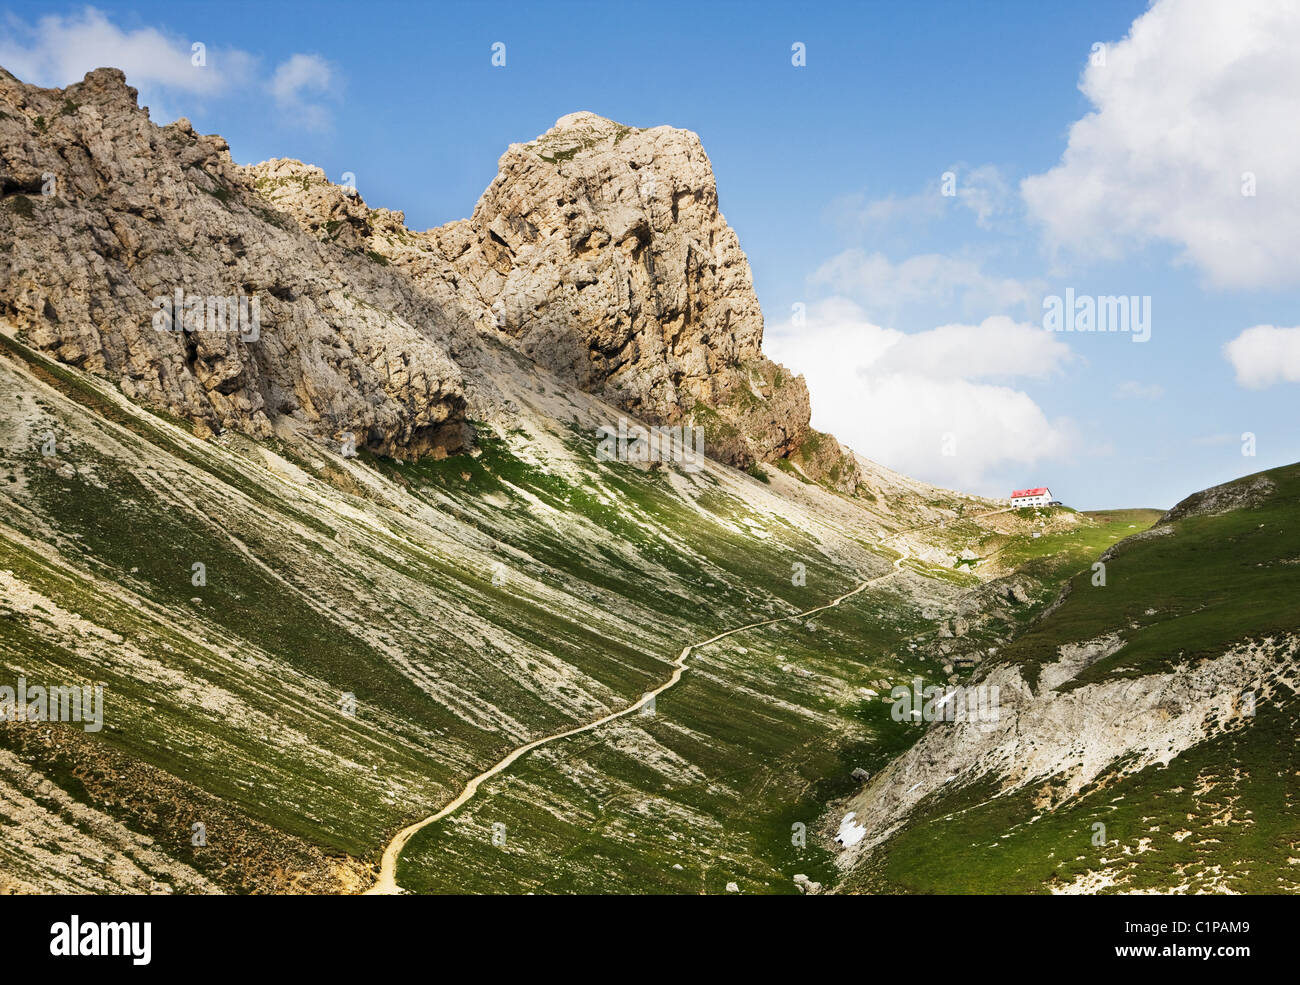 Tourist trail and remote mountain hostel in valley - Stock Image